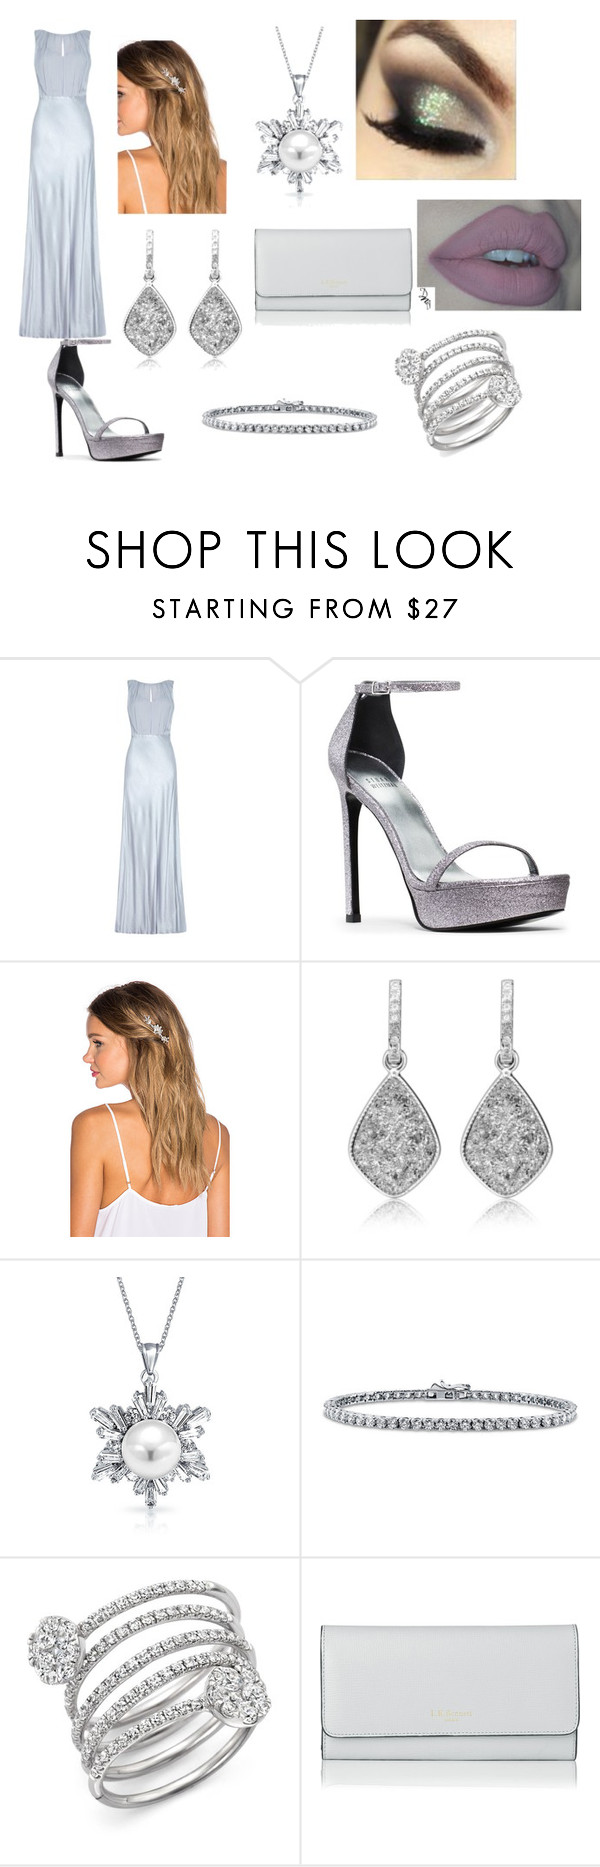 """""""Untitled #361"""" by ray-dany ❤ liked on Polyvore featuring Ghost, Lelet NY, Bling Jewelry, BERRICLE, Bloomingdale's, L.K.Bennett, women's clothing, women's fashion, women and female"""